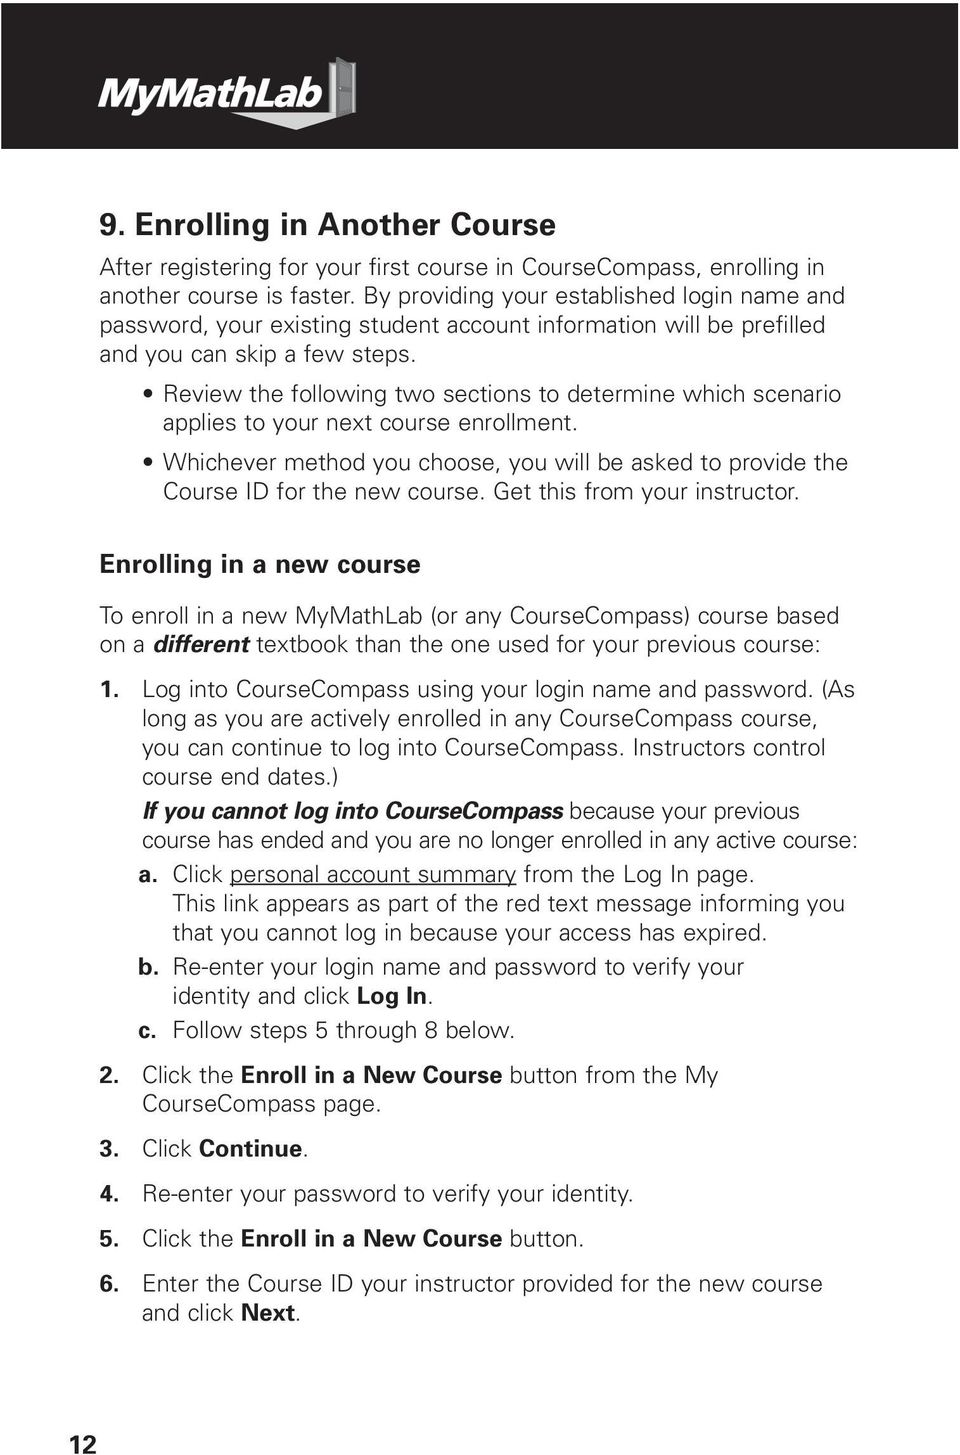 Review the following two sections to determine which scenario applies to your next course enrollment. Whichever method you choose, you will be asked to provide the Course ID for the new course.